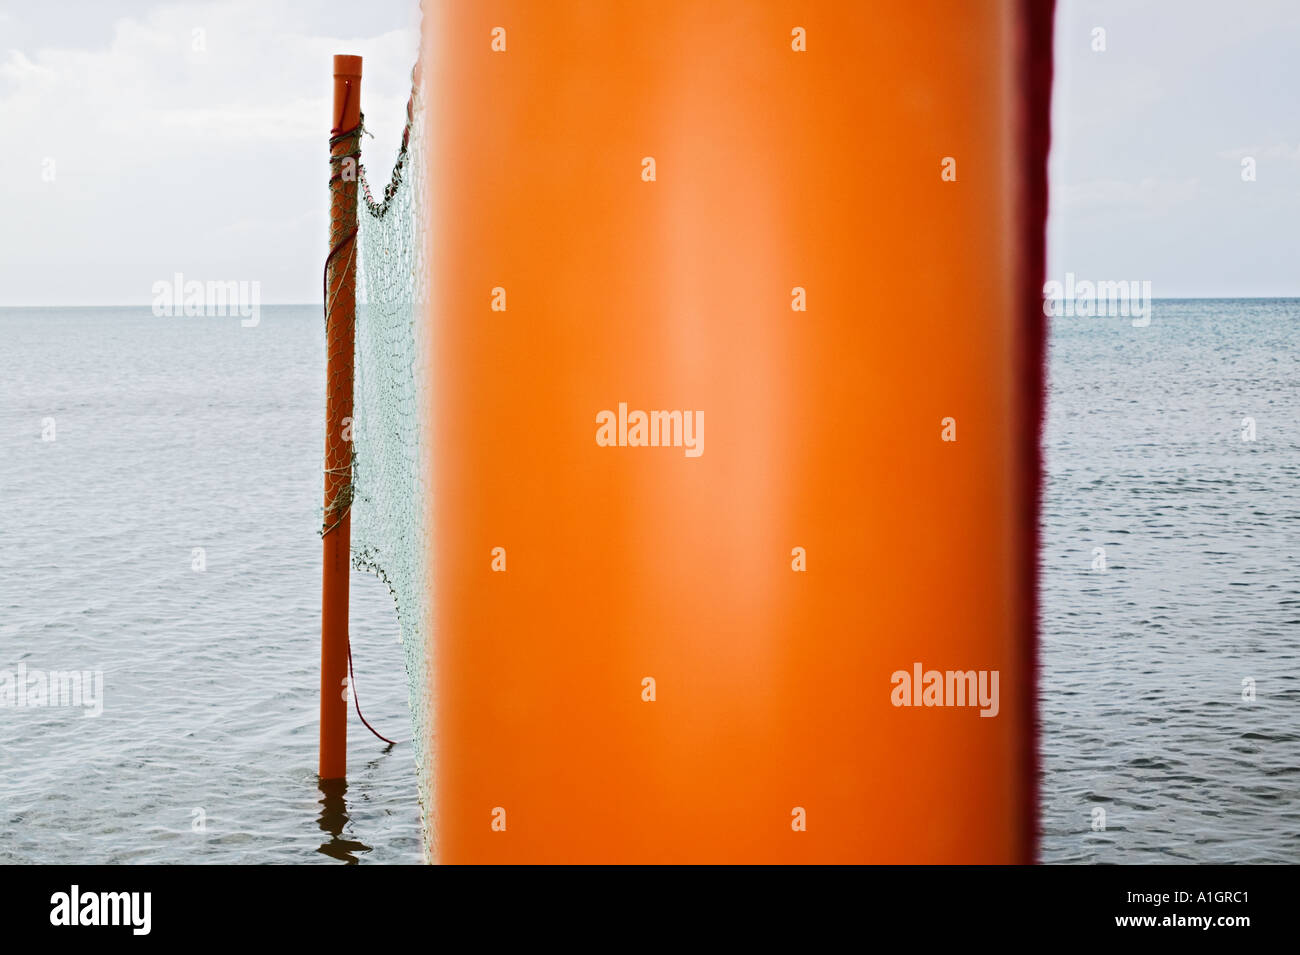 Volleyball Net In Water - Stock Image